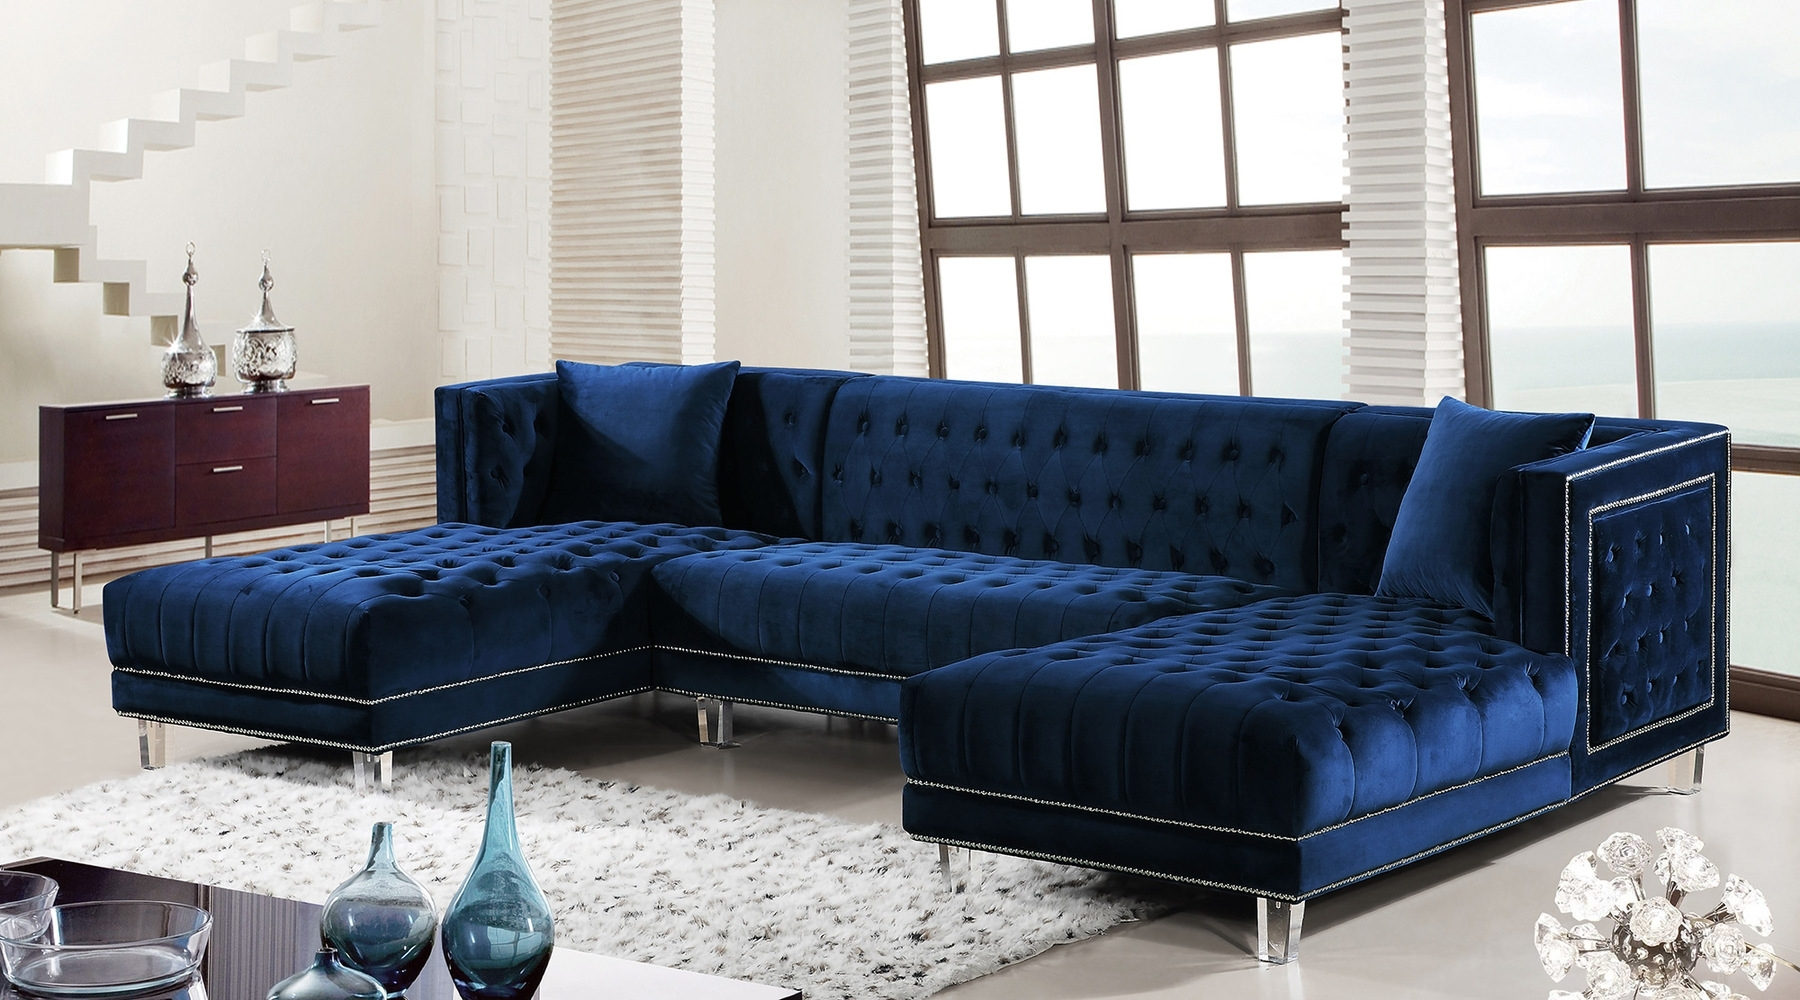 Blue Sectional Sofas Within Well Liked Moda Blue Sectional Sofa 631 Meridian Furniture Sectional Sofas At (Gallery 1 of 20)